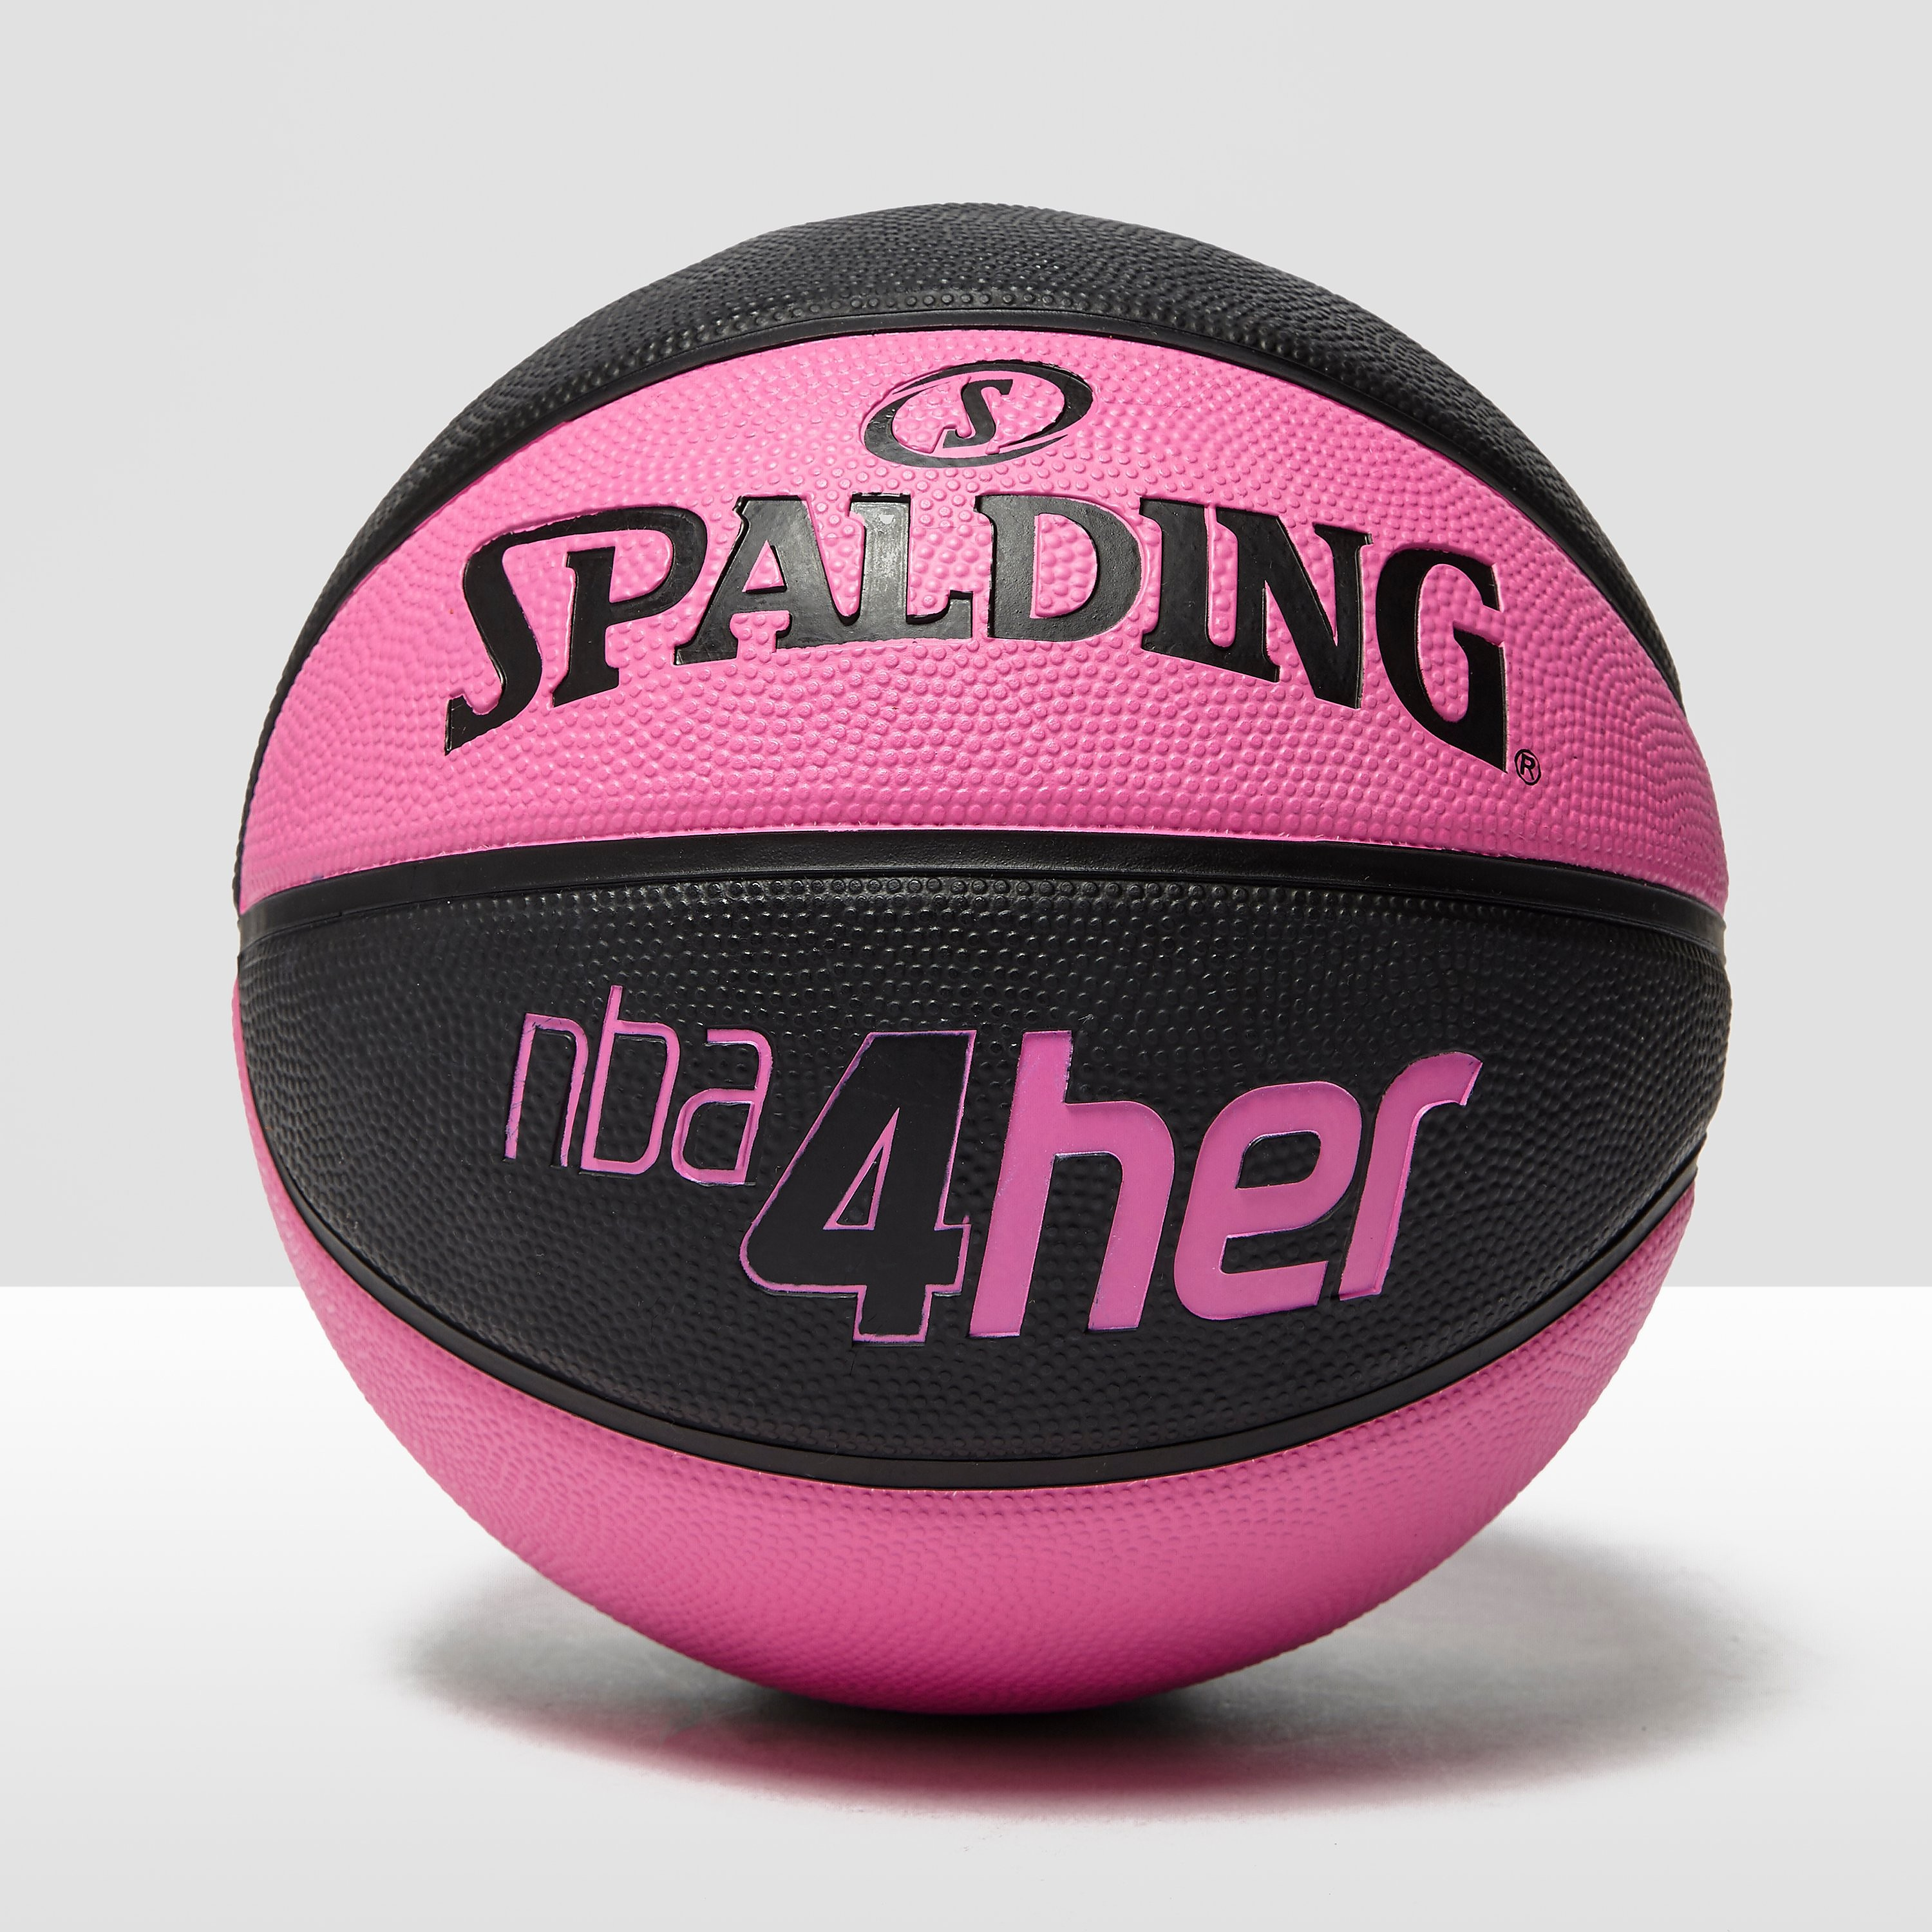 Spalding NBA 4Her Solid Basketball